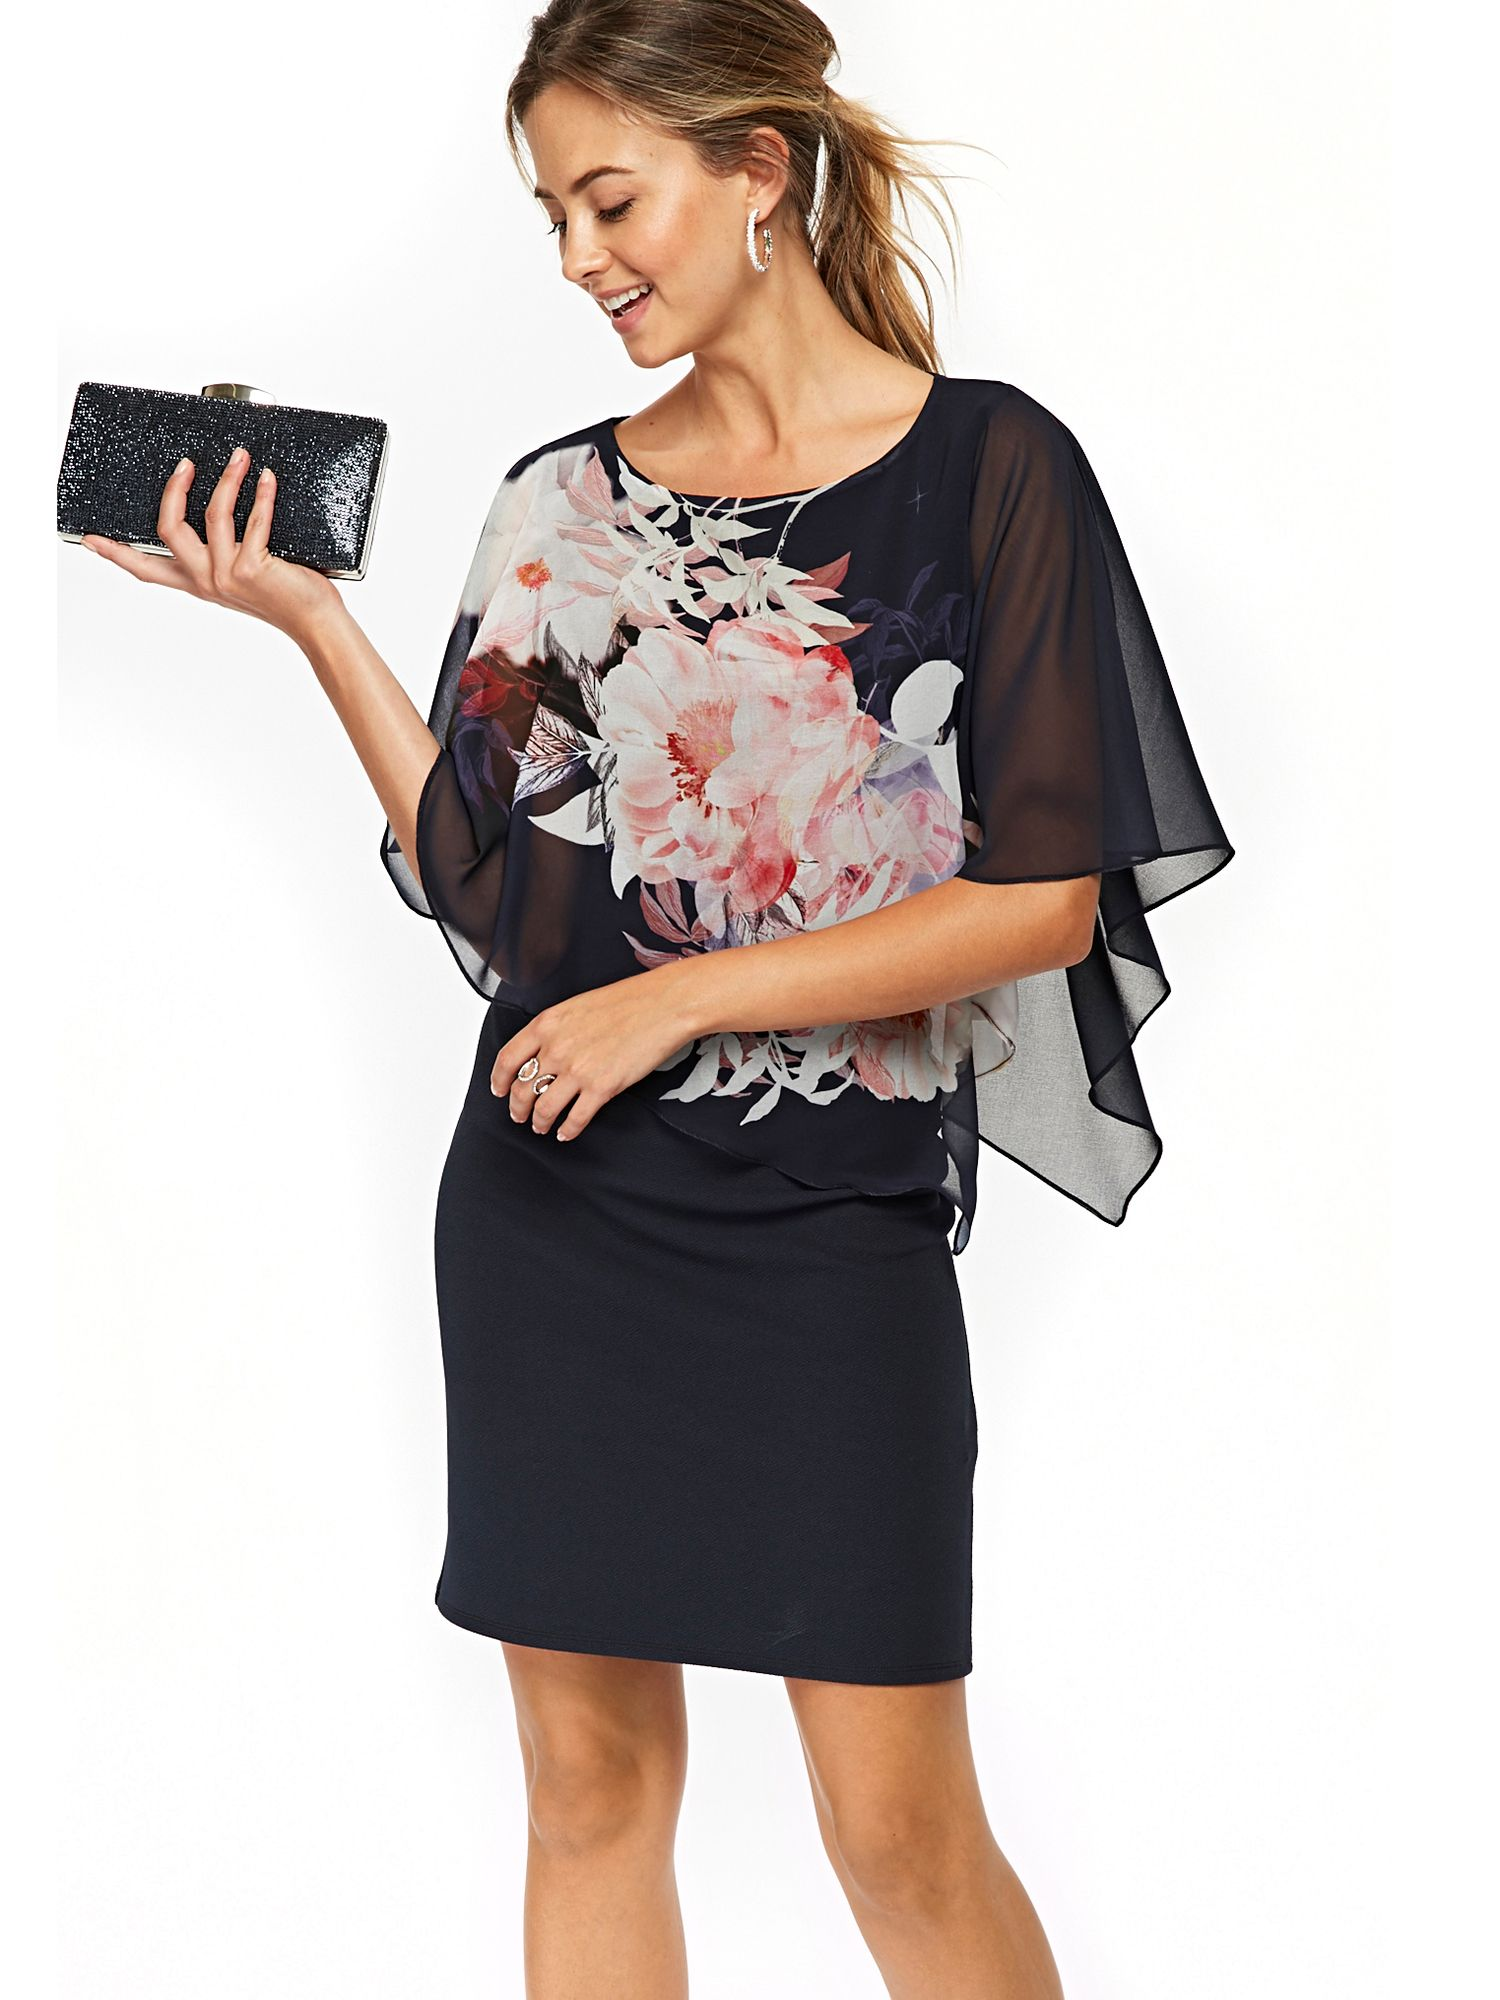 discount crazy price 100% authentic Wallis Petite Blossom Shift Dress - House Of Fraser   Wallis